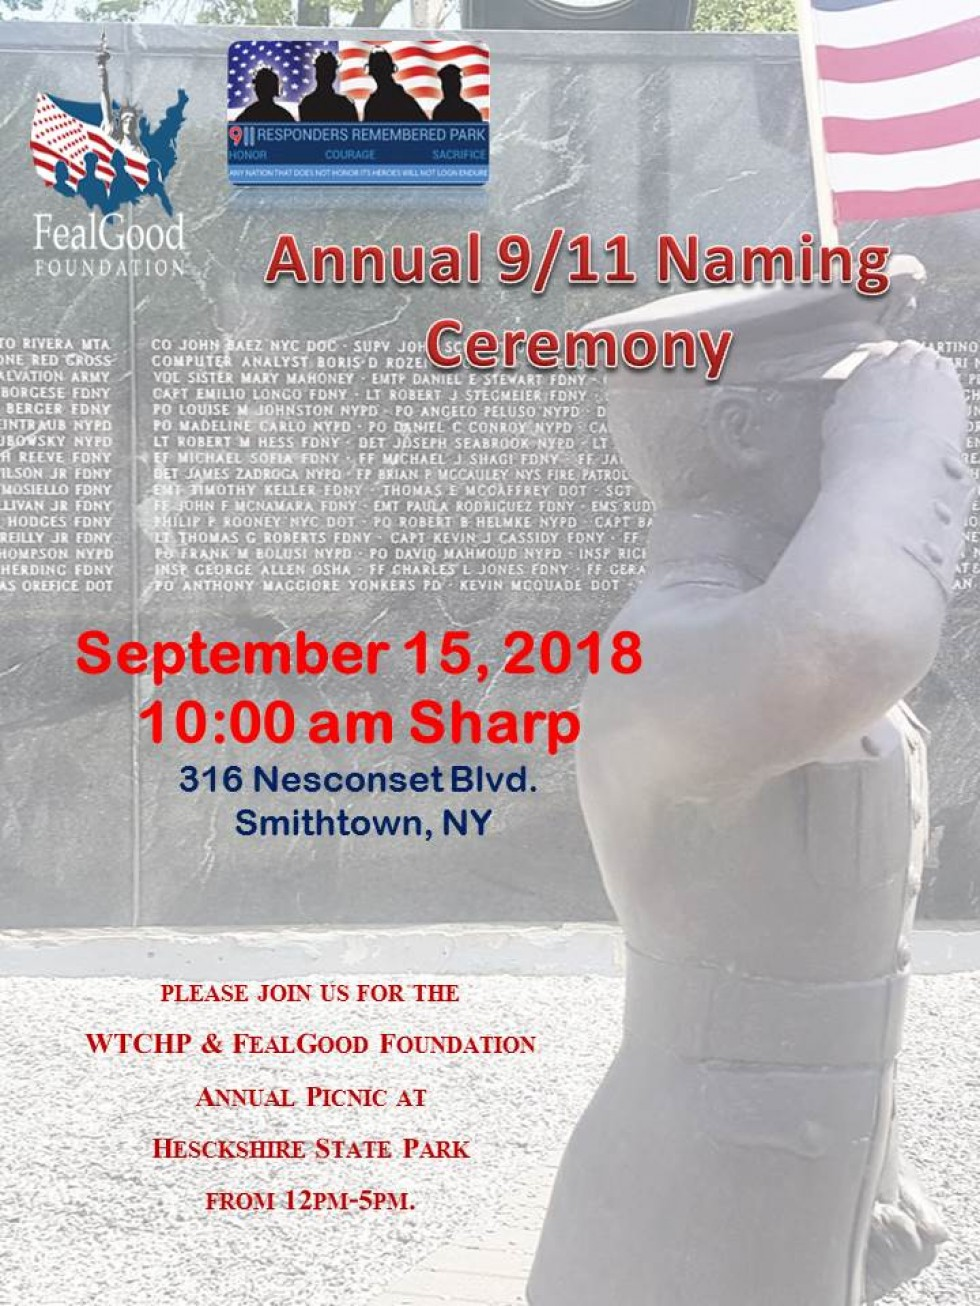 9/11 Naming Ceremony